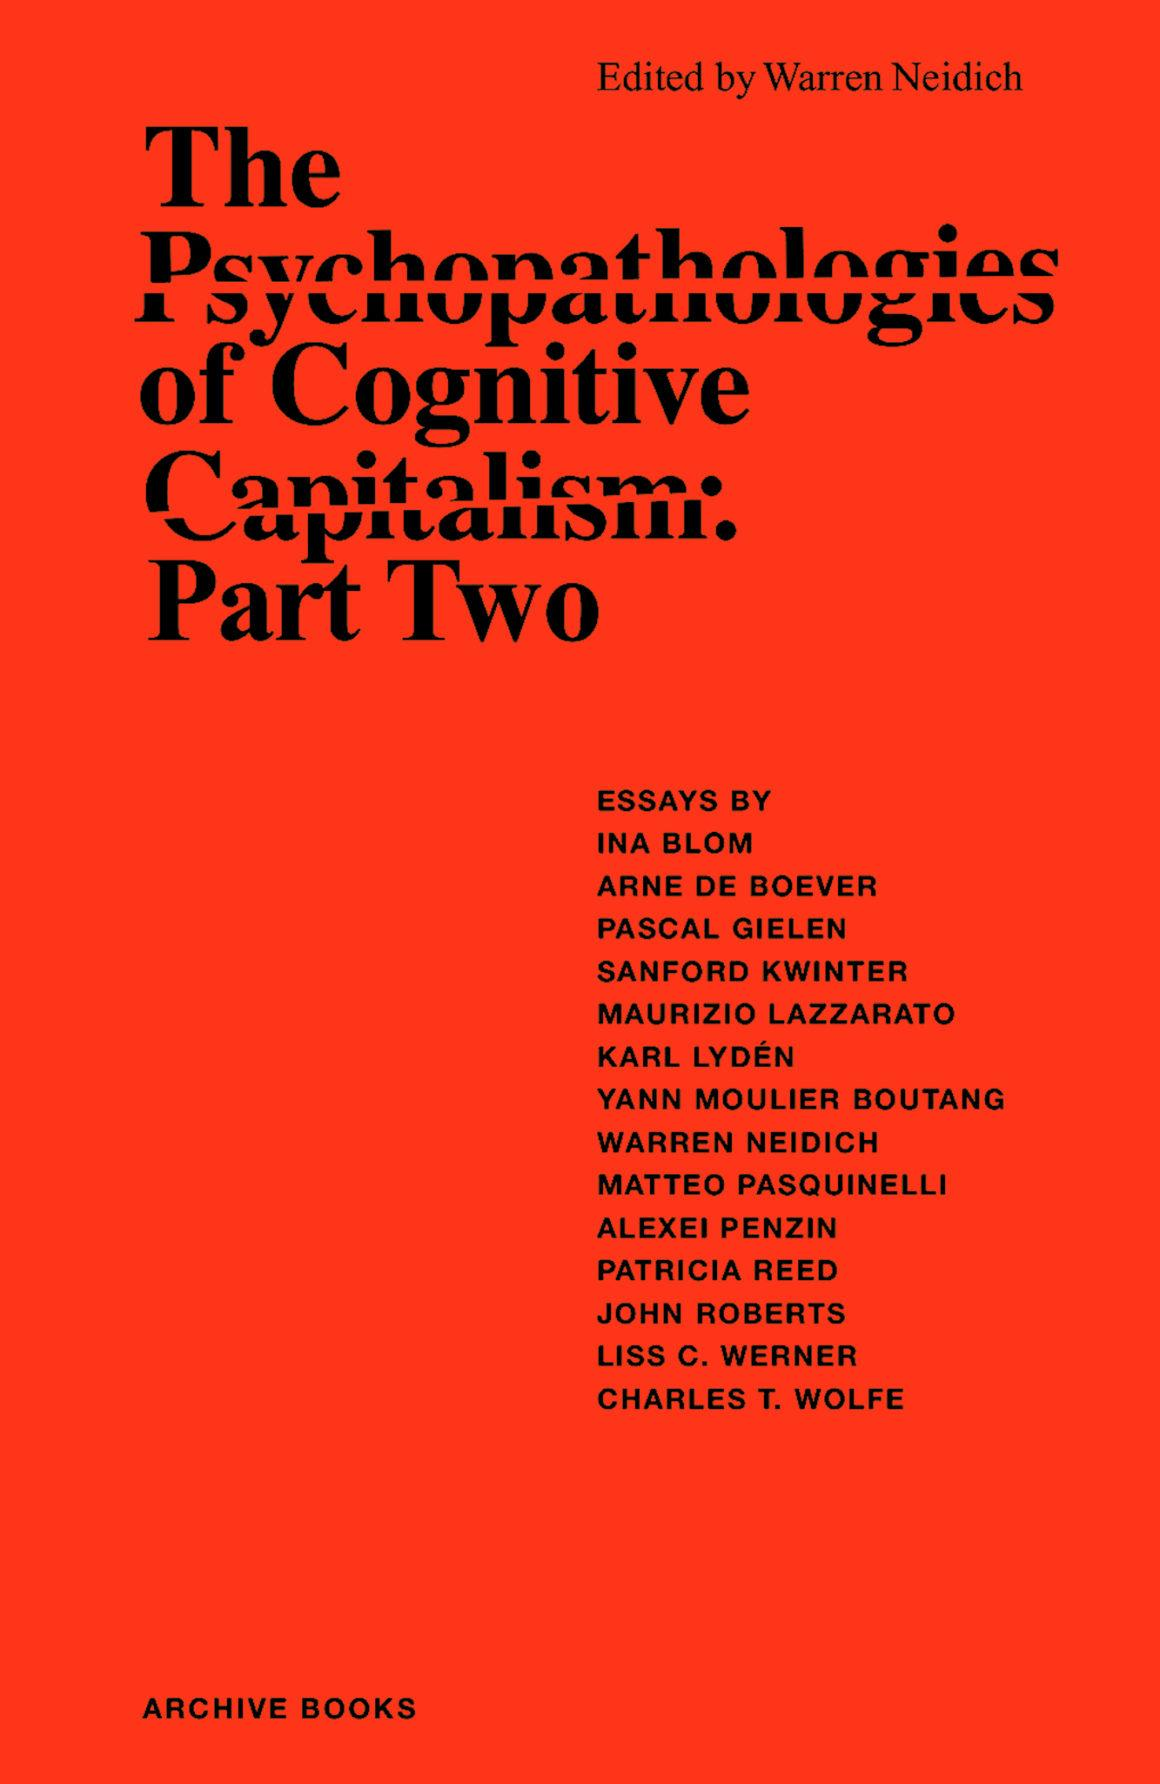 The Psychopathologies of Cognitive Capitalism. Part Two